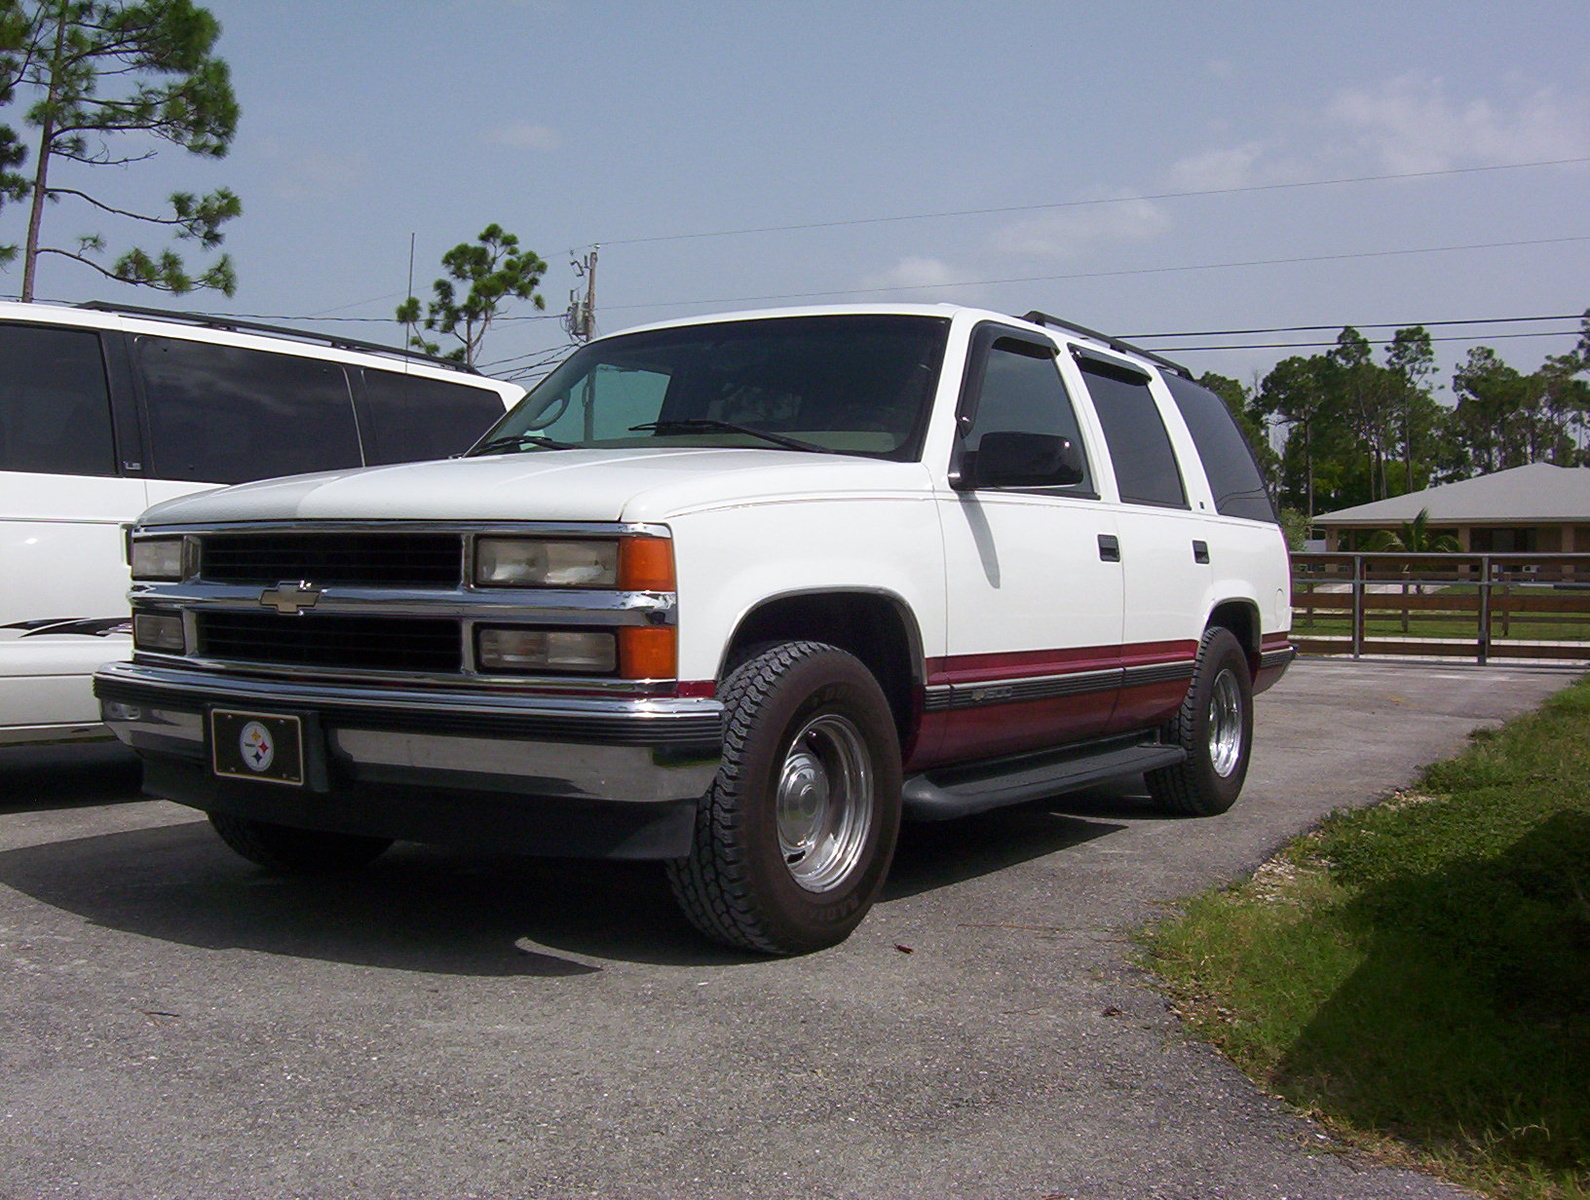 Picture of 1997 Chevrolet Tahoe 4 Dr LT SUV